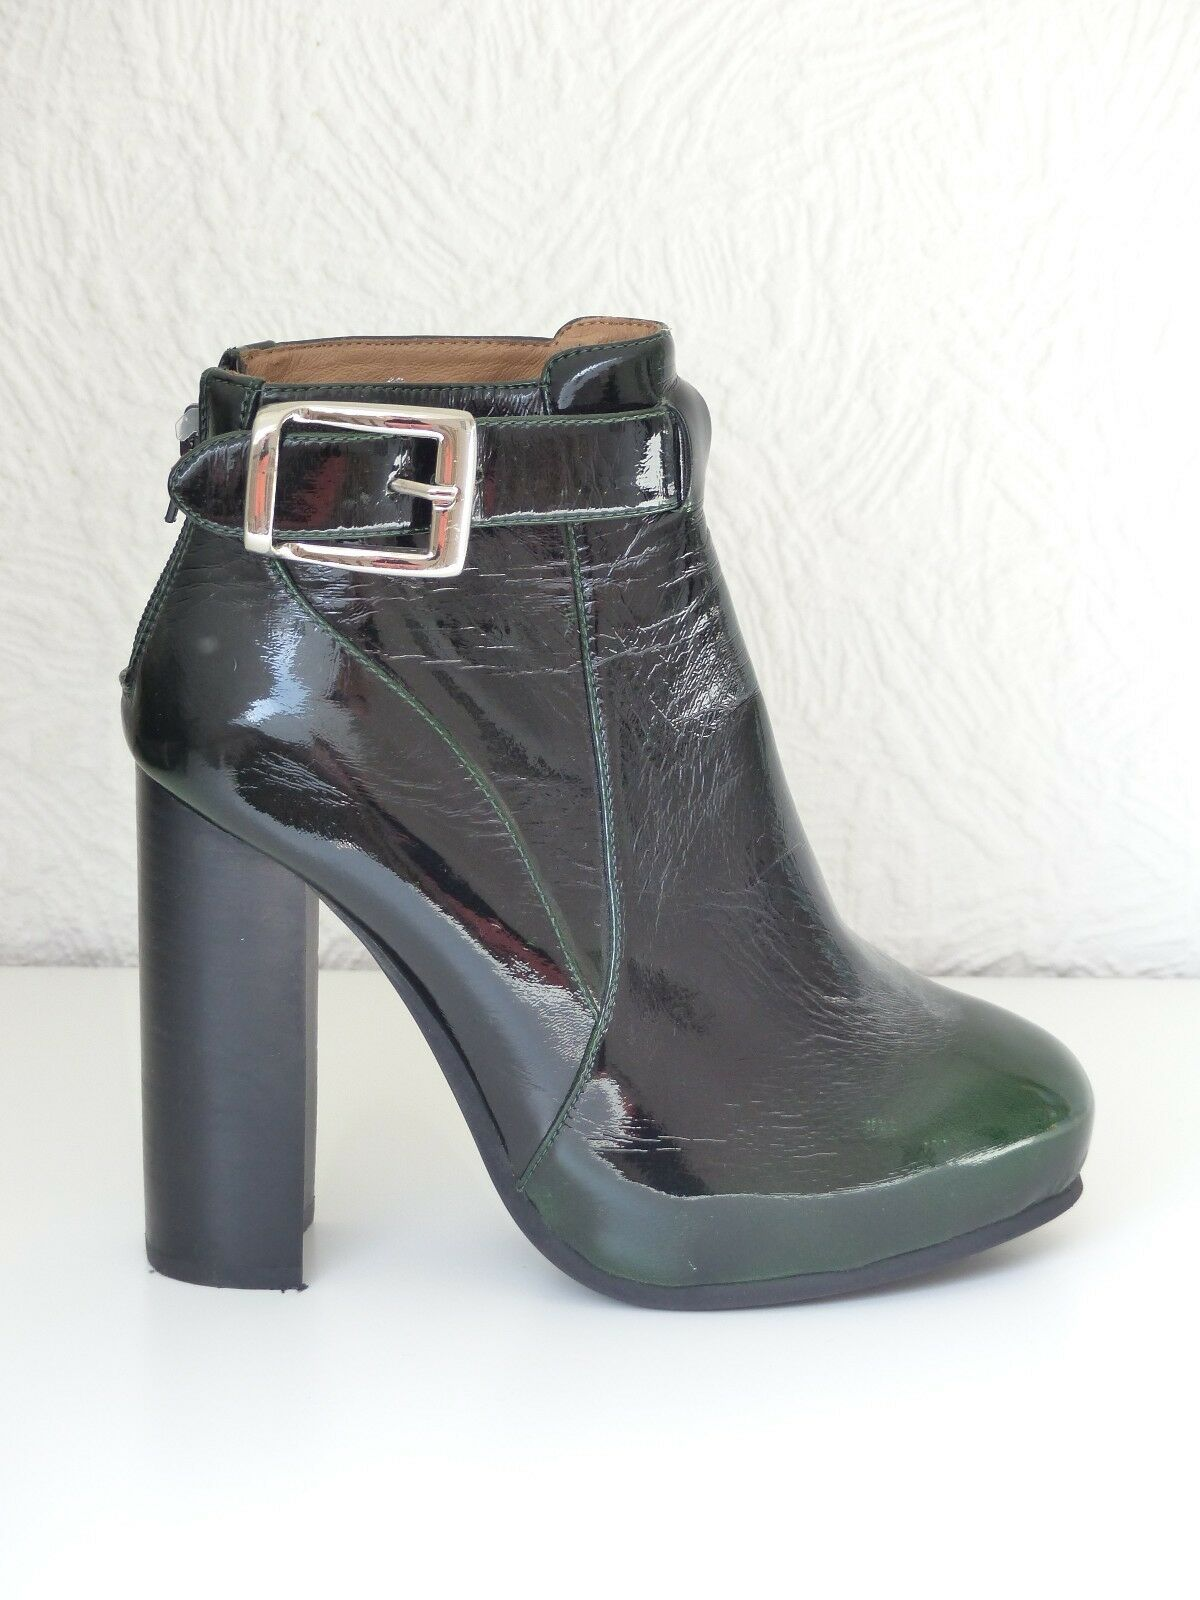 Jeffrey Campbell ankle boots 38 5 Verde Vernice Patent Leather Green